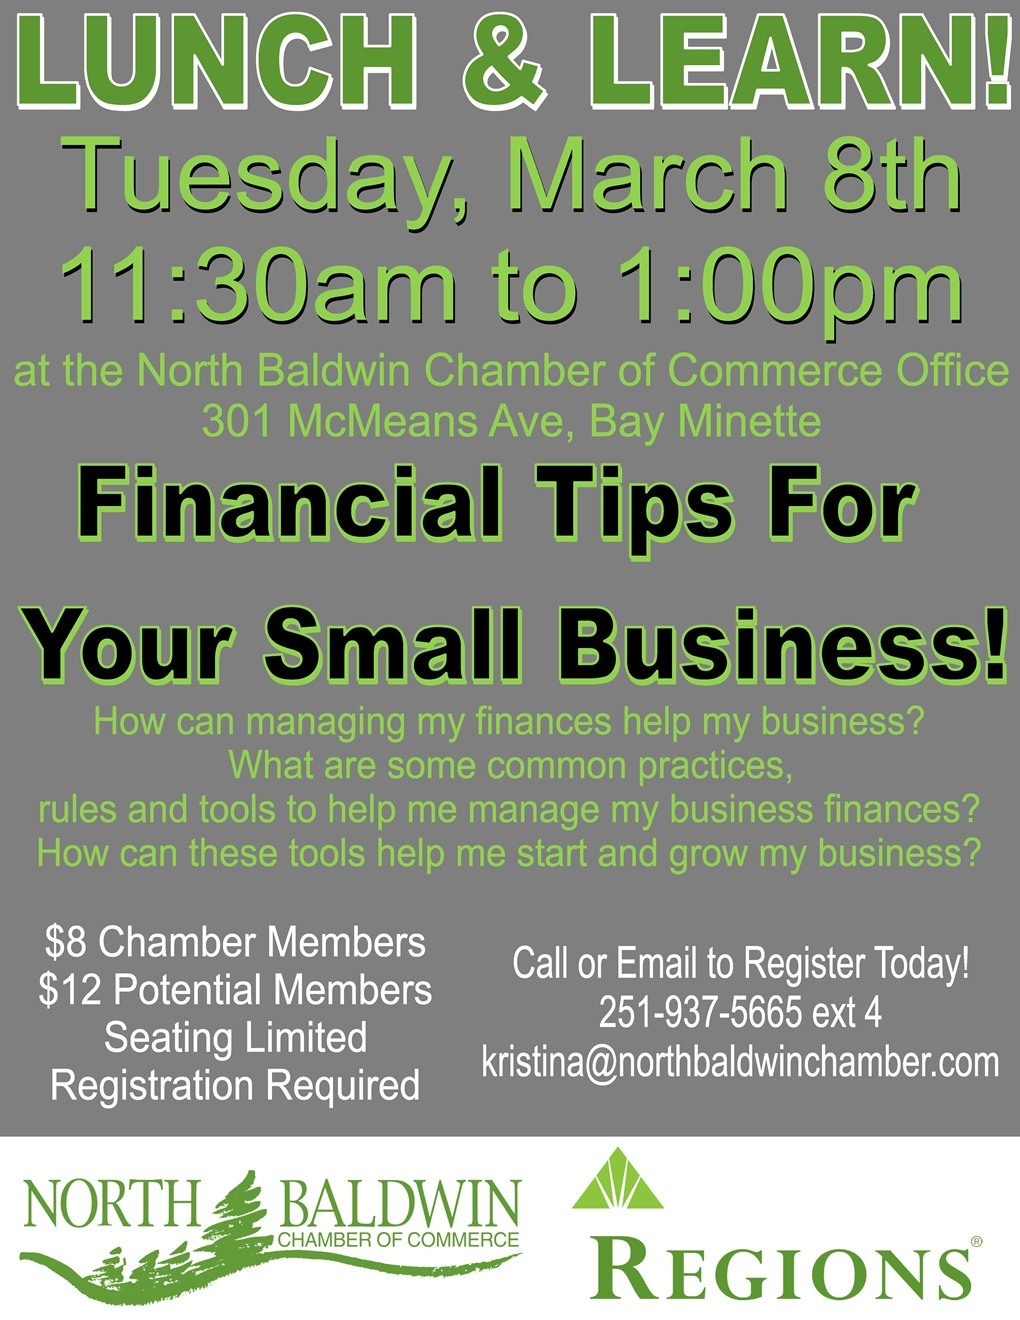 Event Lunch & Learn: Financial Tips For Your Small Business And Register My Small Business